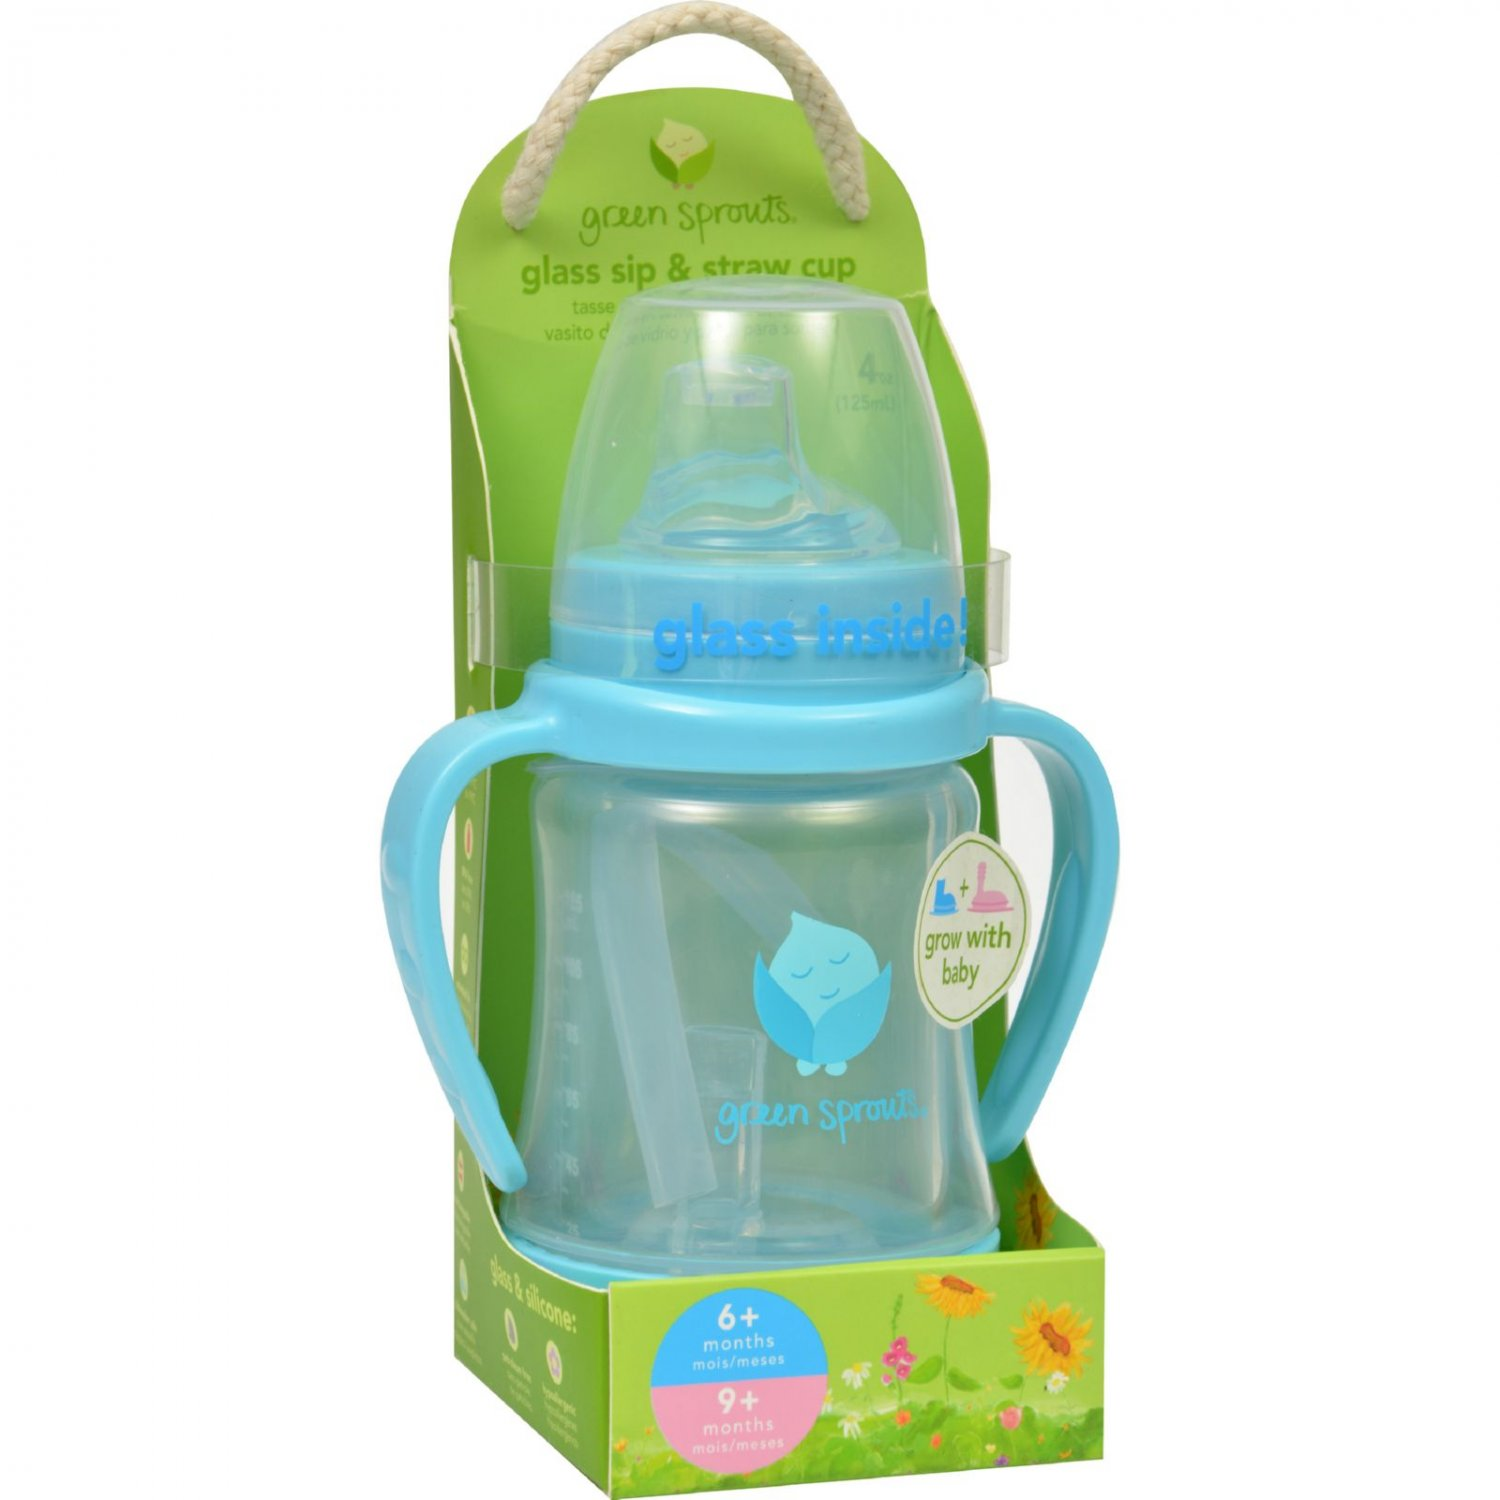 Green Sprouts Cup - Sip N Straw - Glass - 6 Months Plus - Aqua - 1 Count